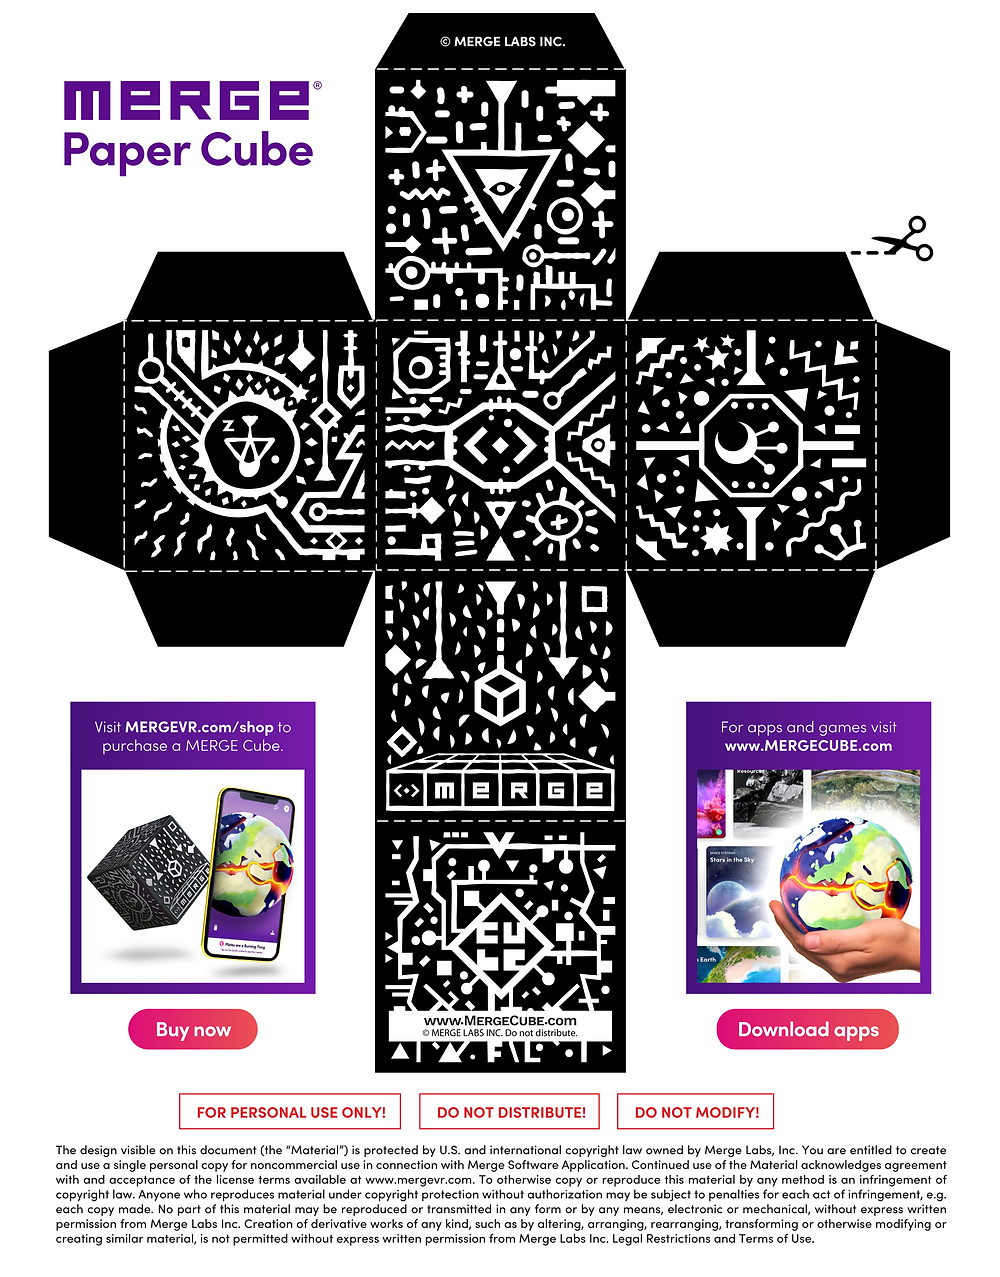 Download the Merge Paper Cube